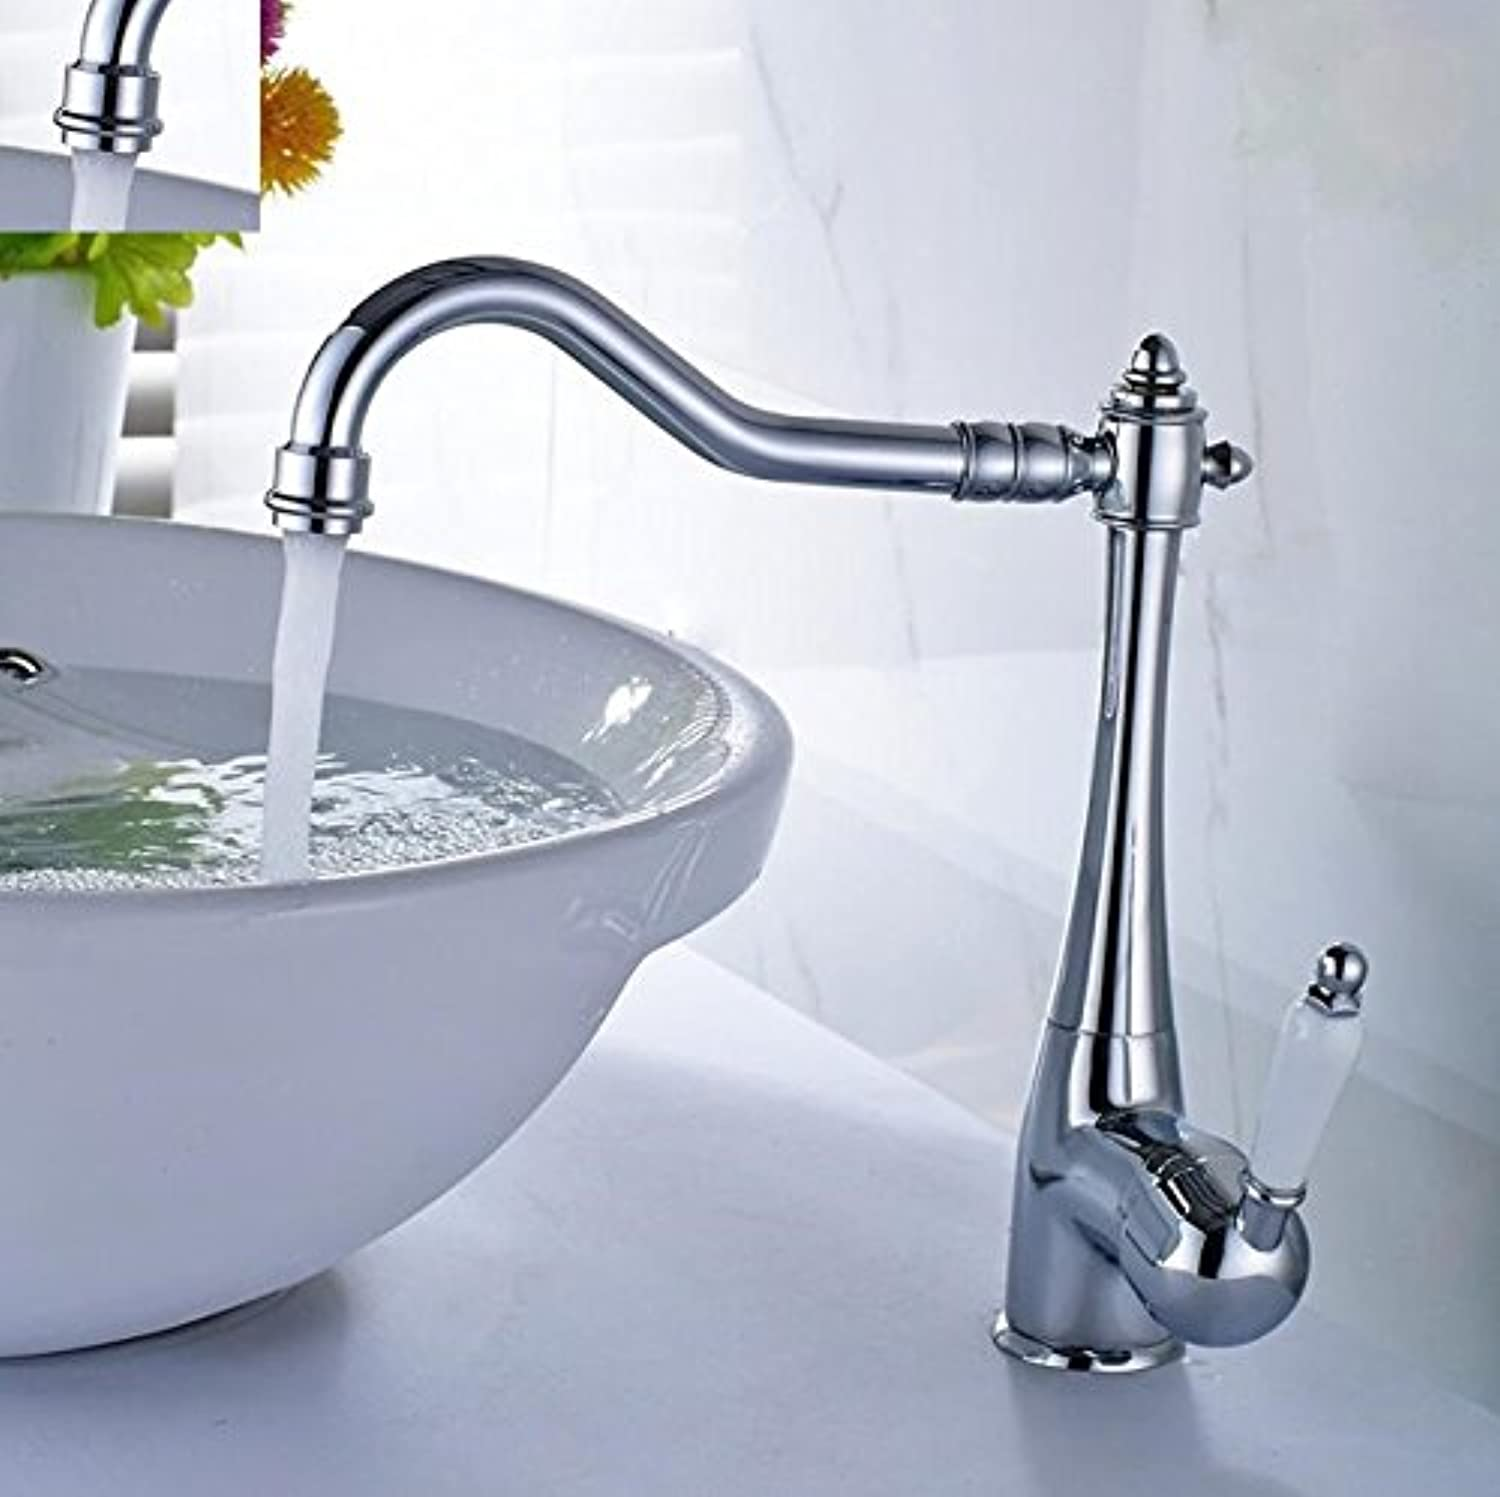 Aawang Euro Basin Faucet Sink Faucet Brushed Nickel Cold Hot Porcelain Holder 360 Degree Swivel Bathroom Wash Basin Faucet Tap,Chrome